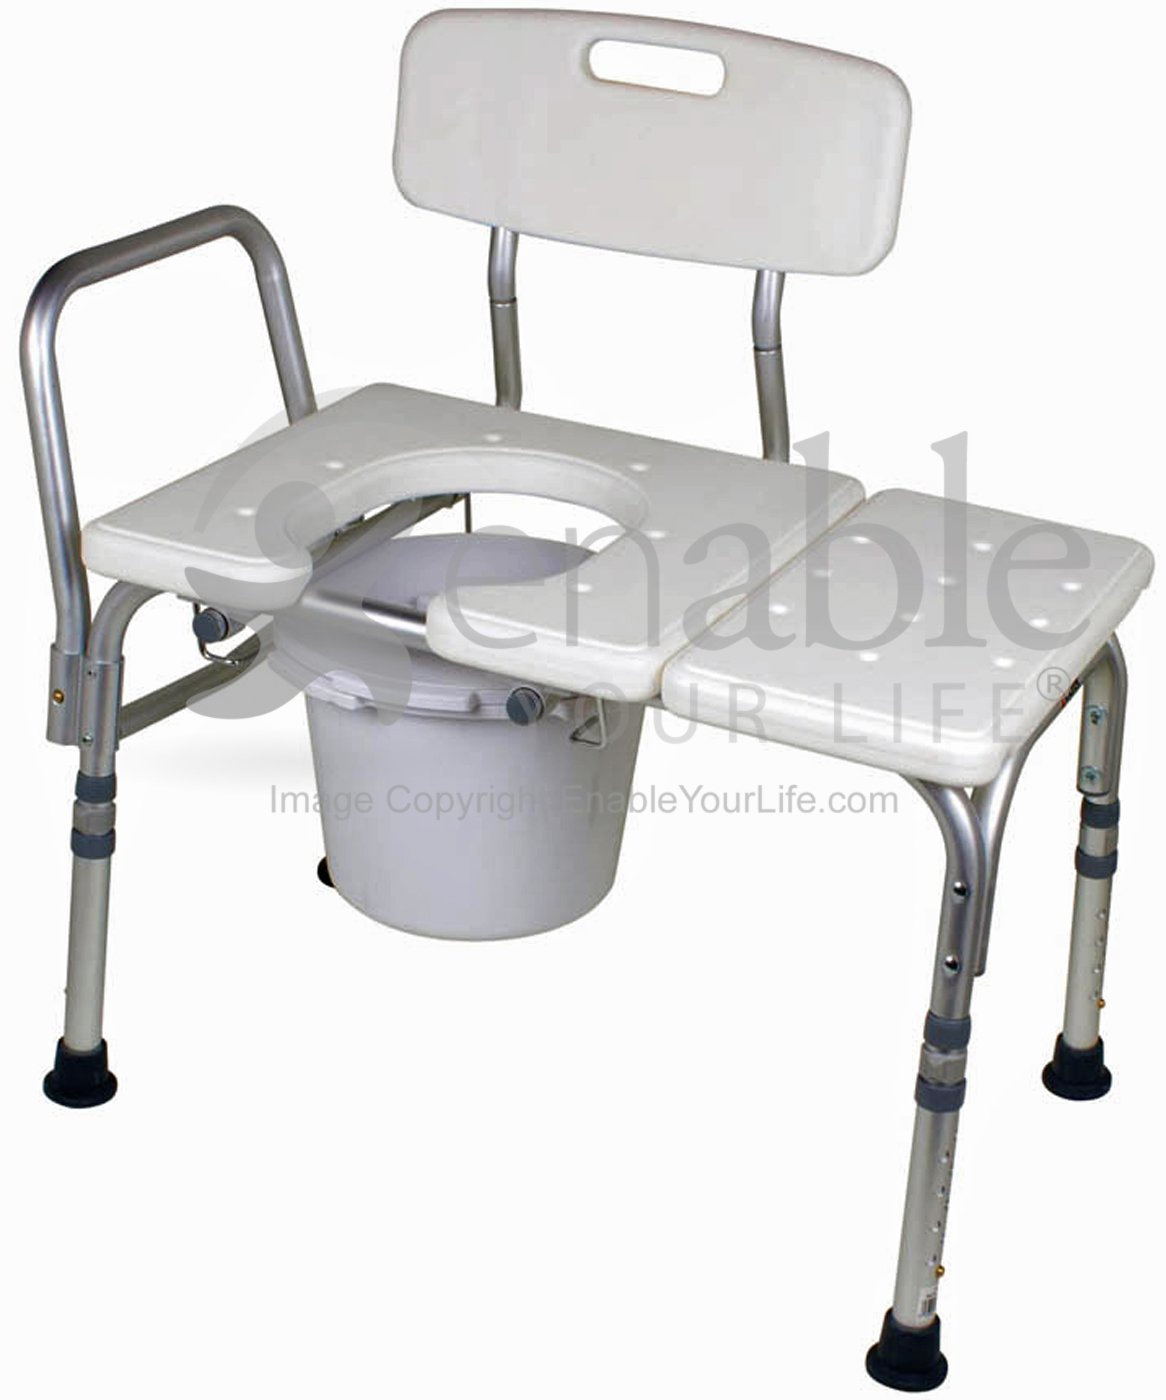 carex transport chair plastic kid chairs bathtub transfer bench with opening bucket